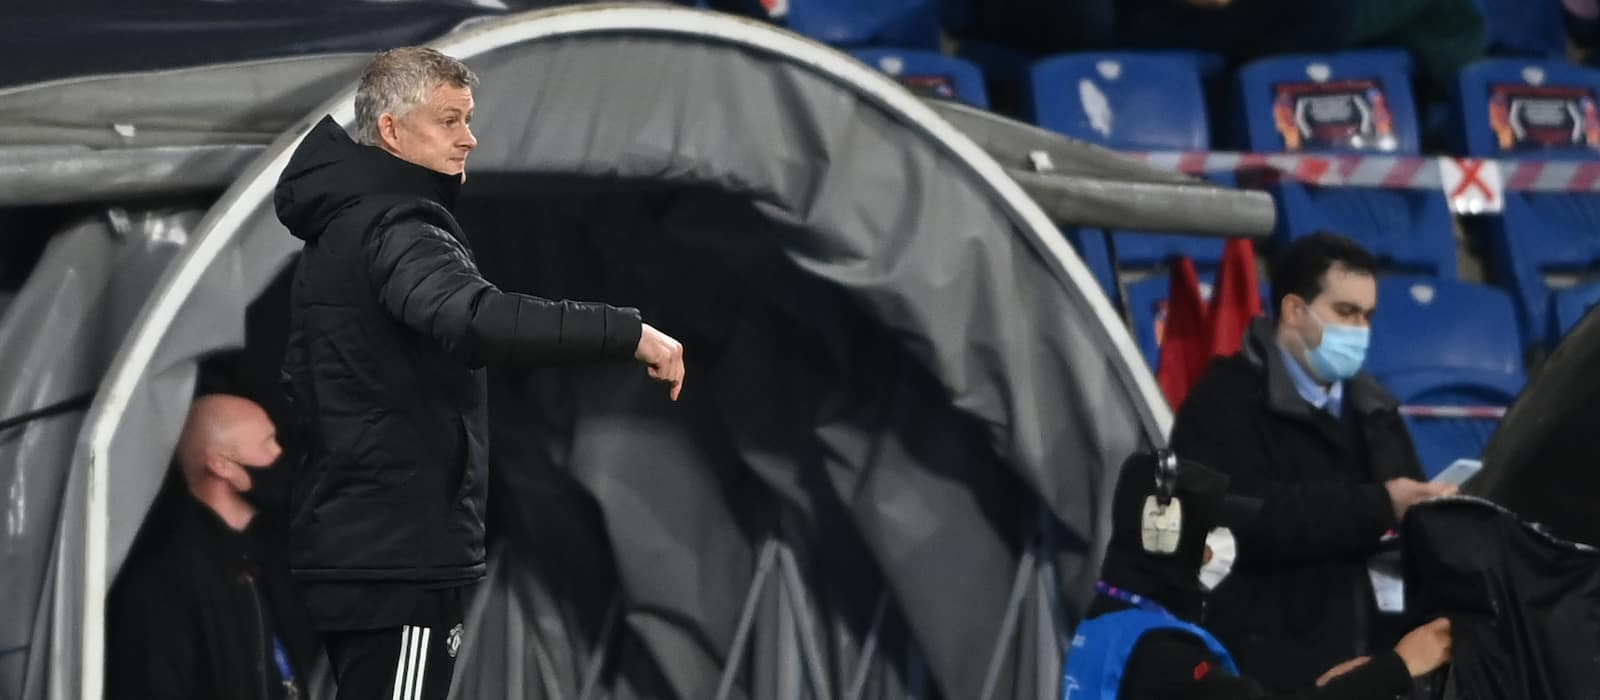 Cries for Ole Gunnar Solskjaer's head become deafening on social media